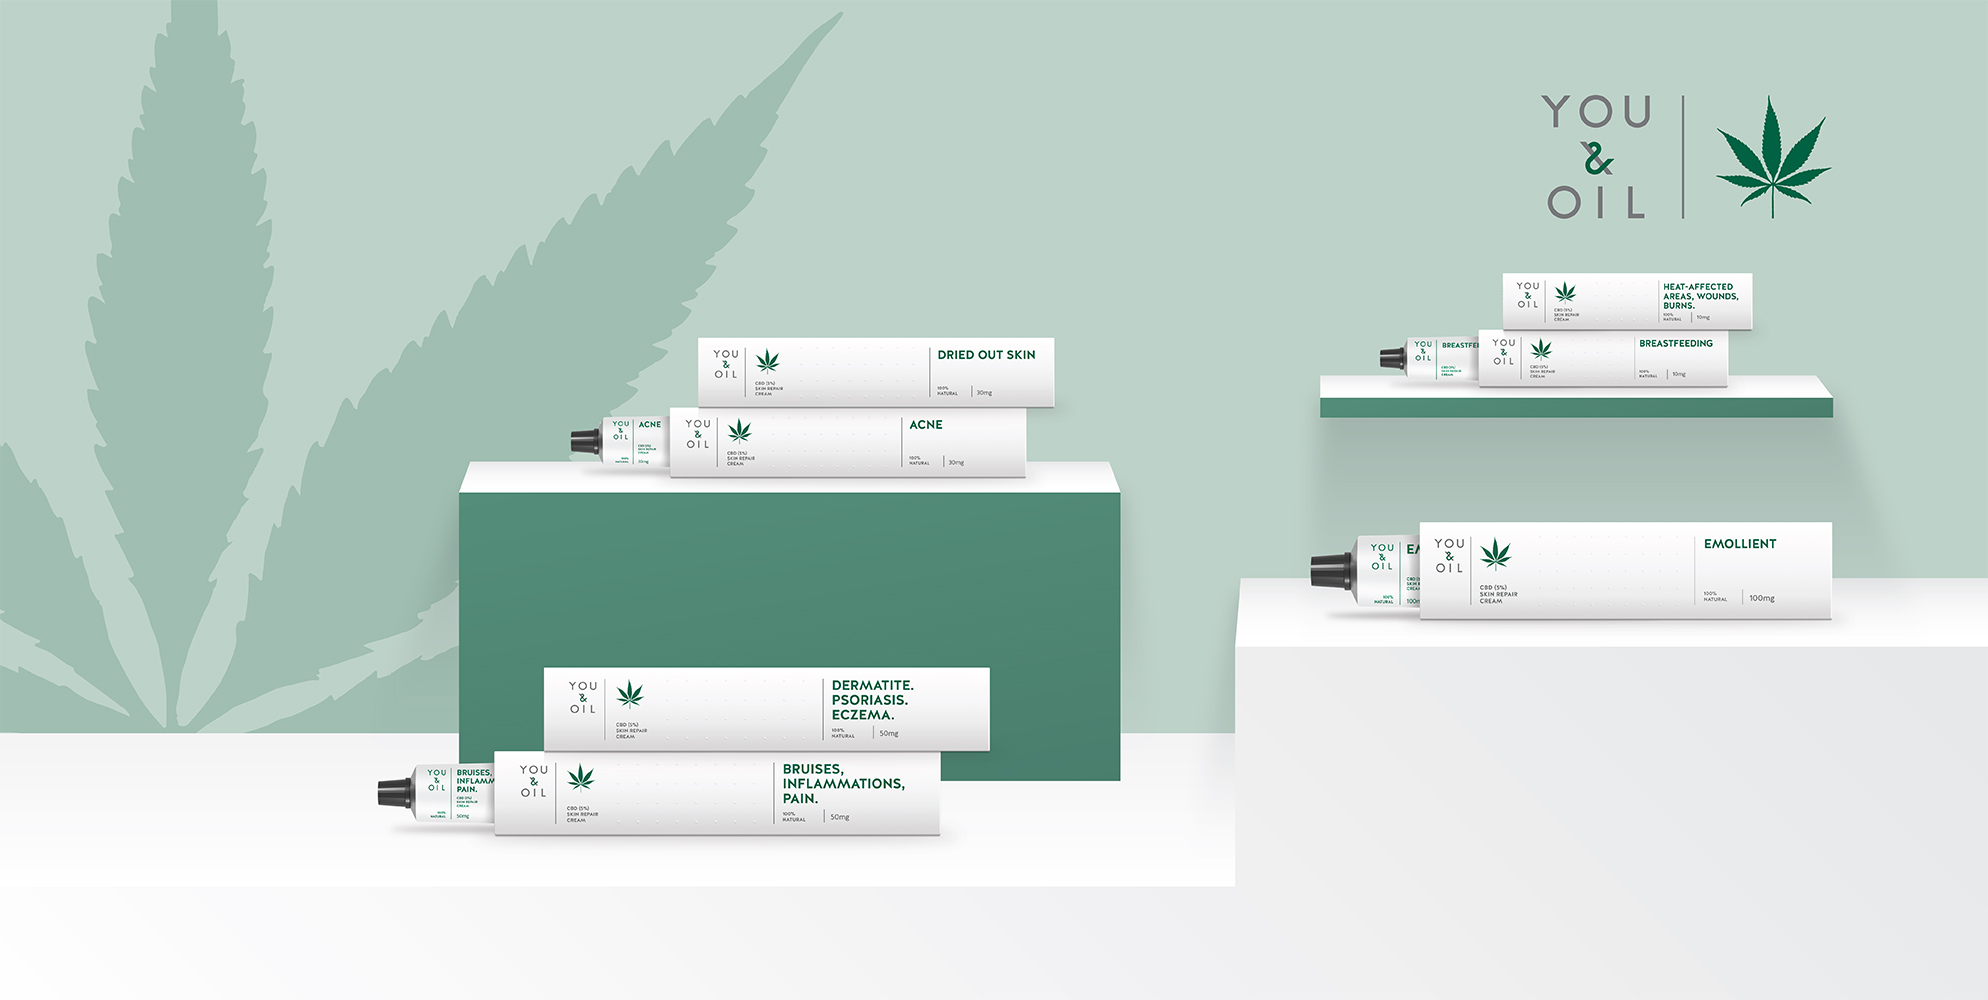 Phyto derma therapy line